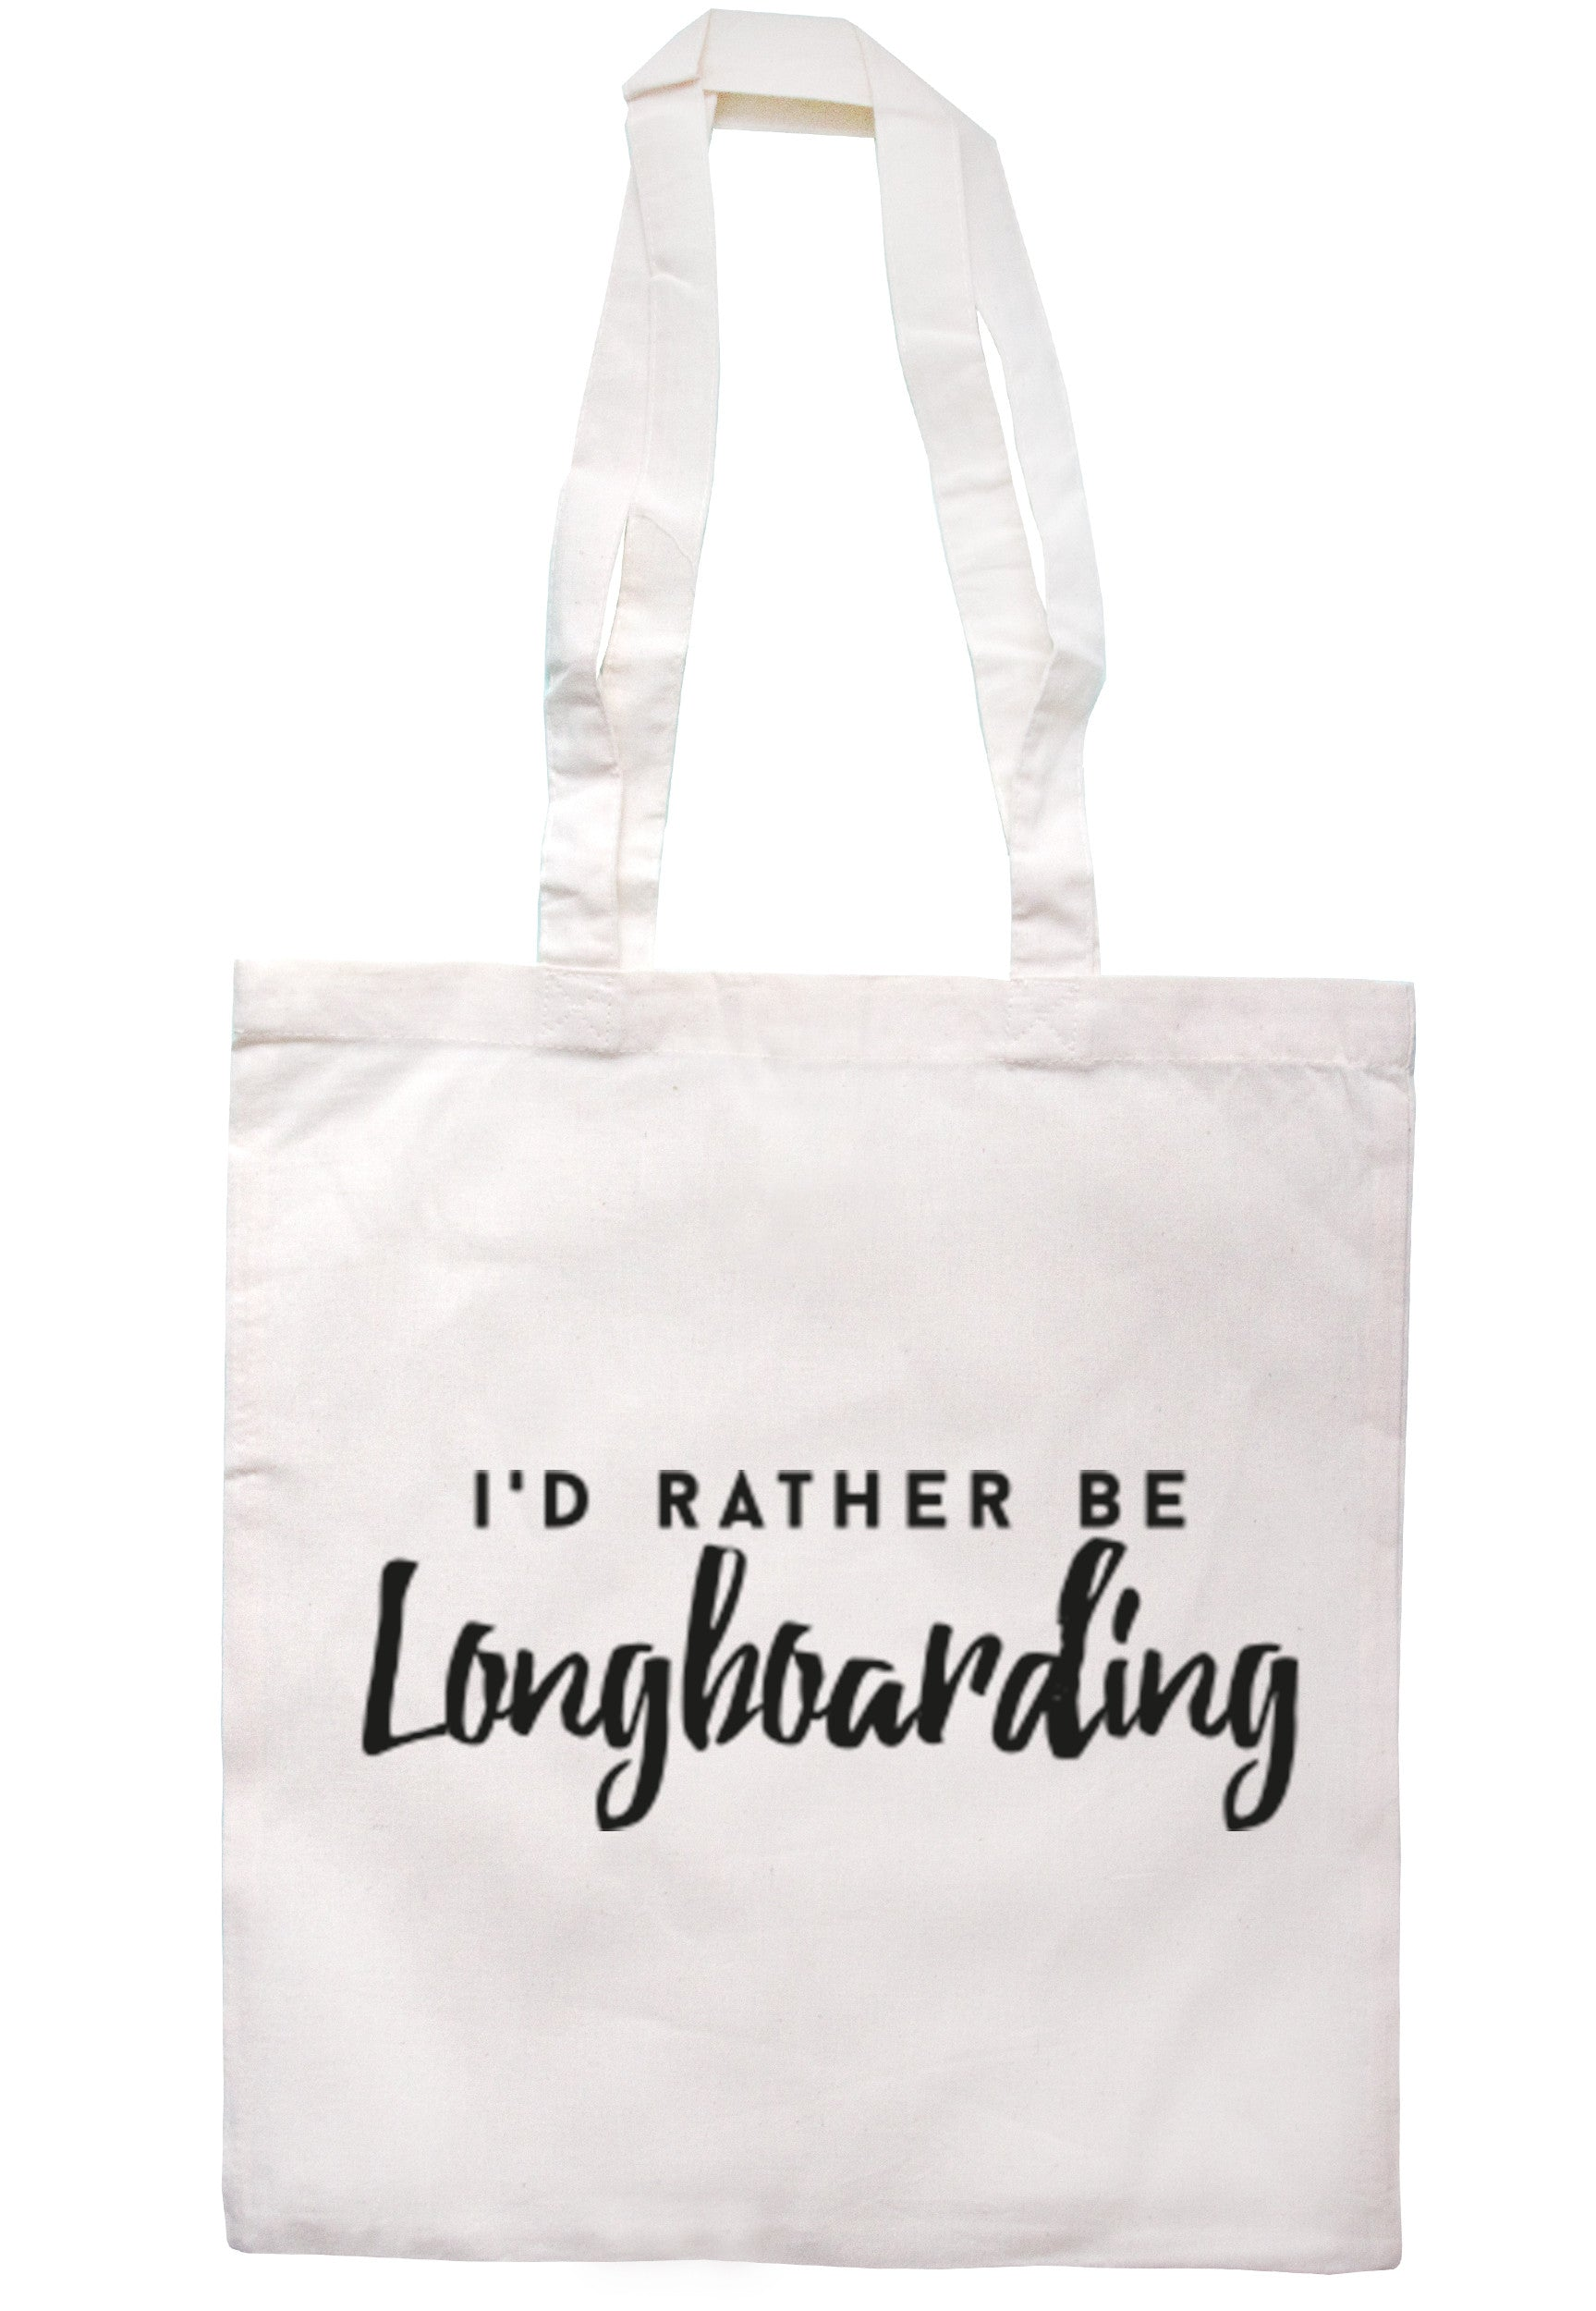 I'd Rather Be Longboarding Tote Bag TB0152 - Illustrated Identity Ltd.